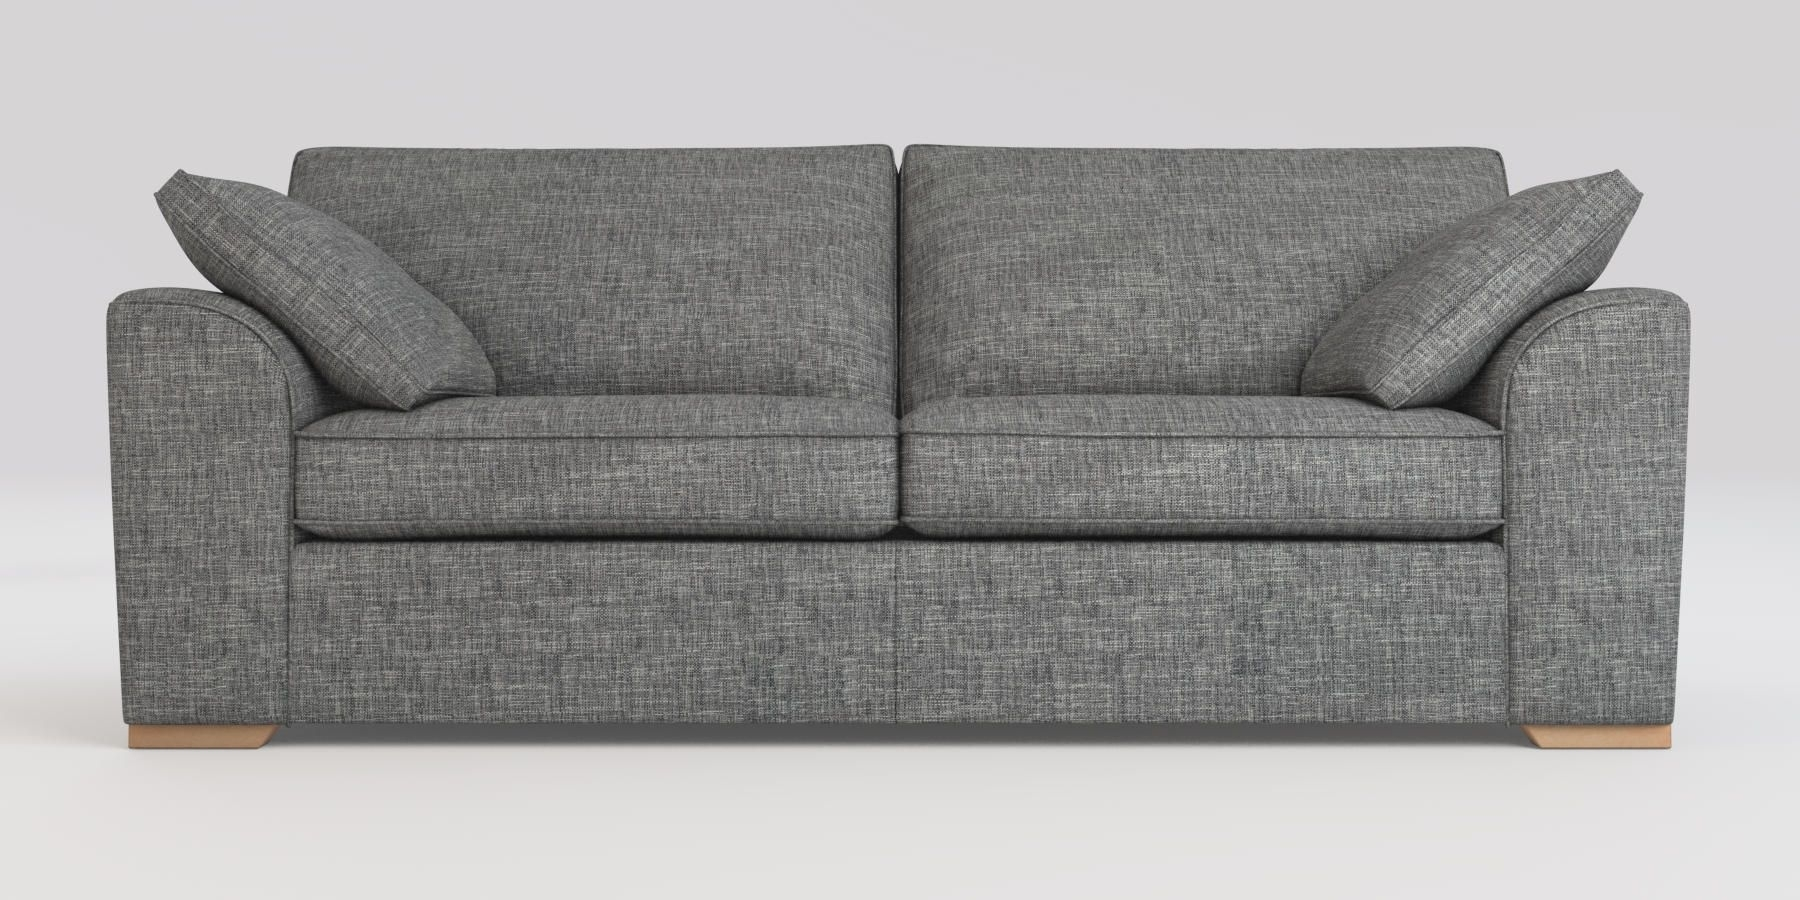 Buy Stamford With Storage Large Sofa (3 Seats) Boucle Weave Dark Regarding Declan 3 Piece Power Reclining Sectionals With Right Facing Console Loveseat (View 17 of 25)